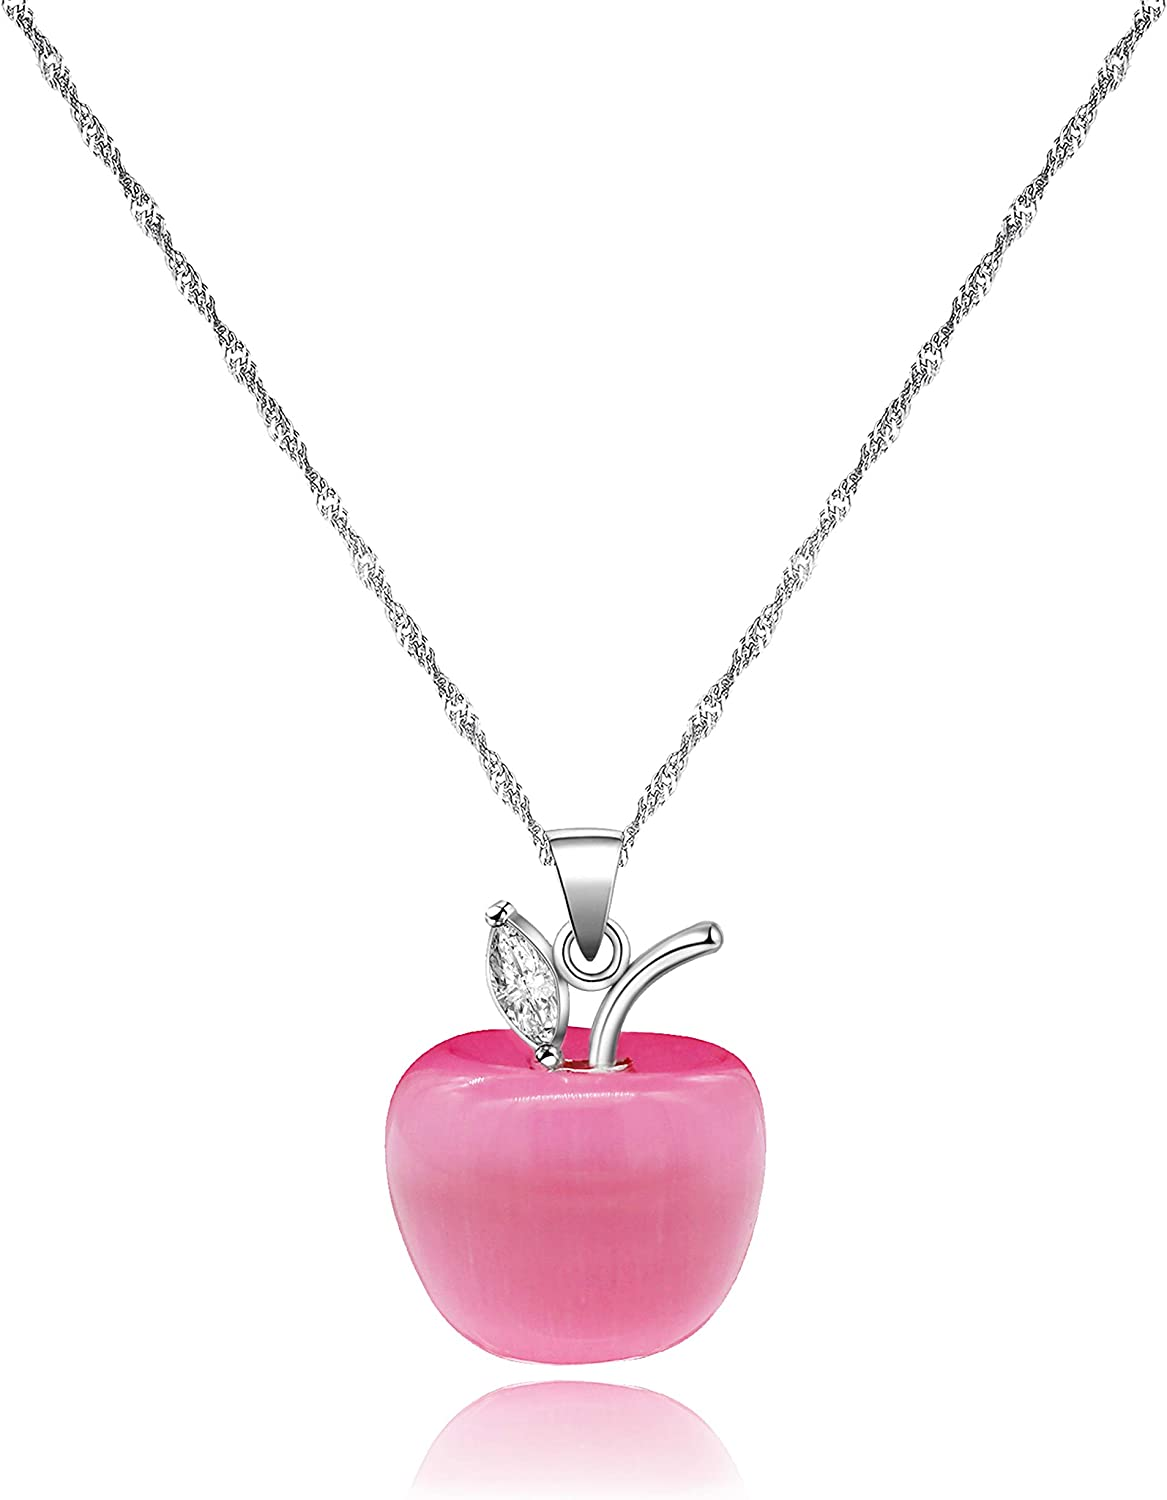 Simulated Cat's Eye Apple Pendant Necklace Thanksgiving Day Gifts for Women Girls ZY042